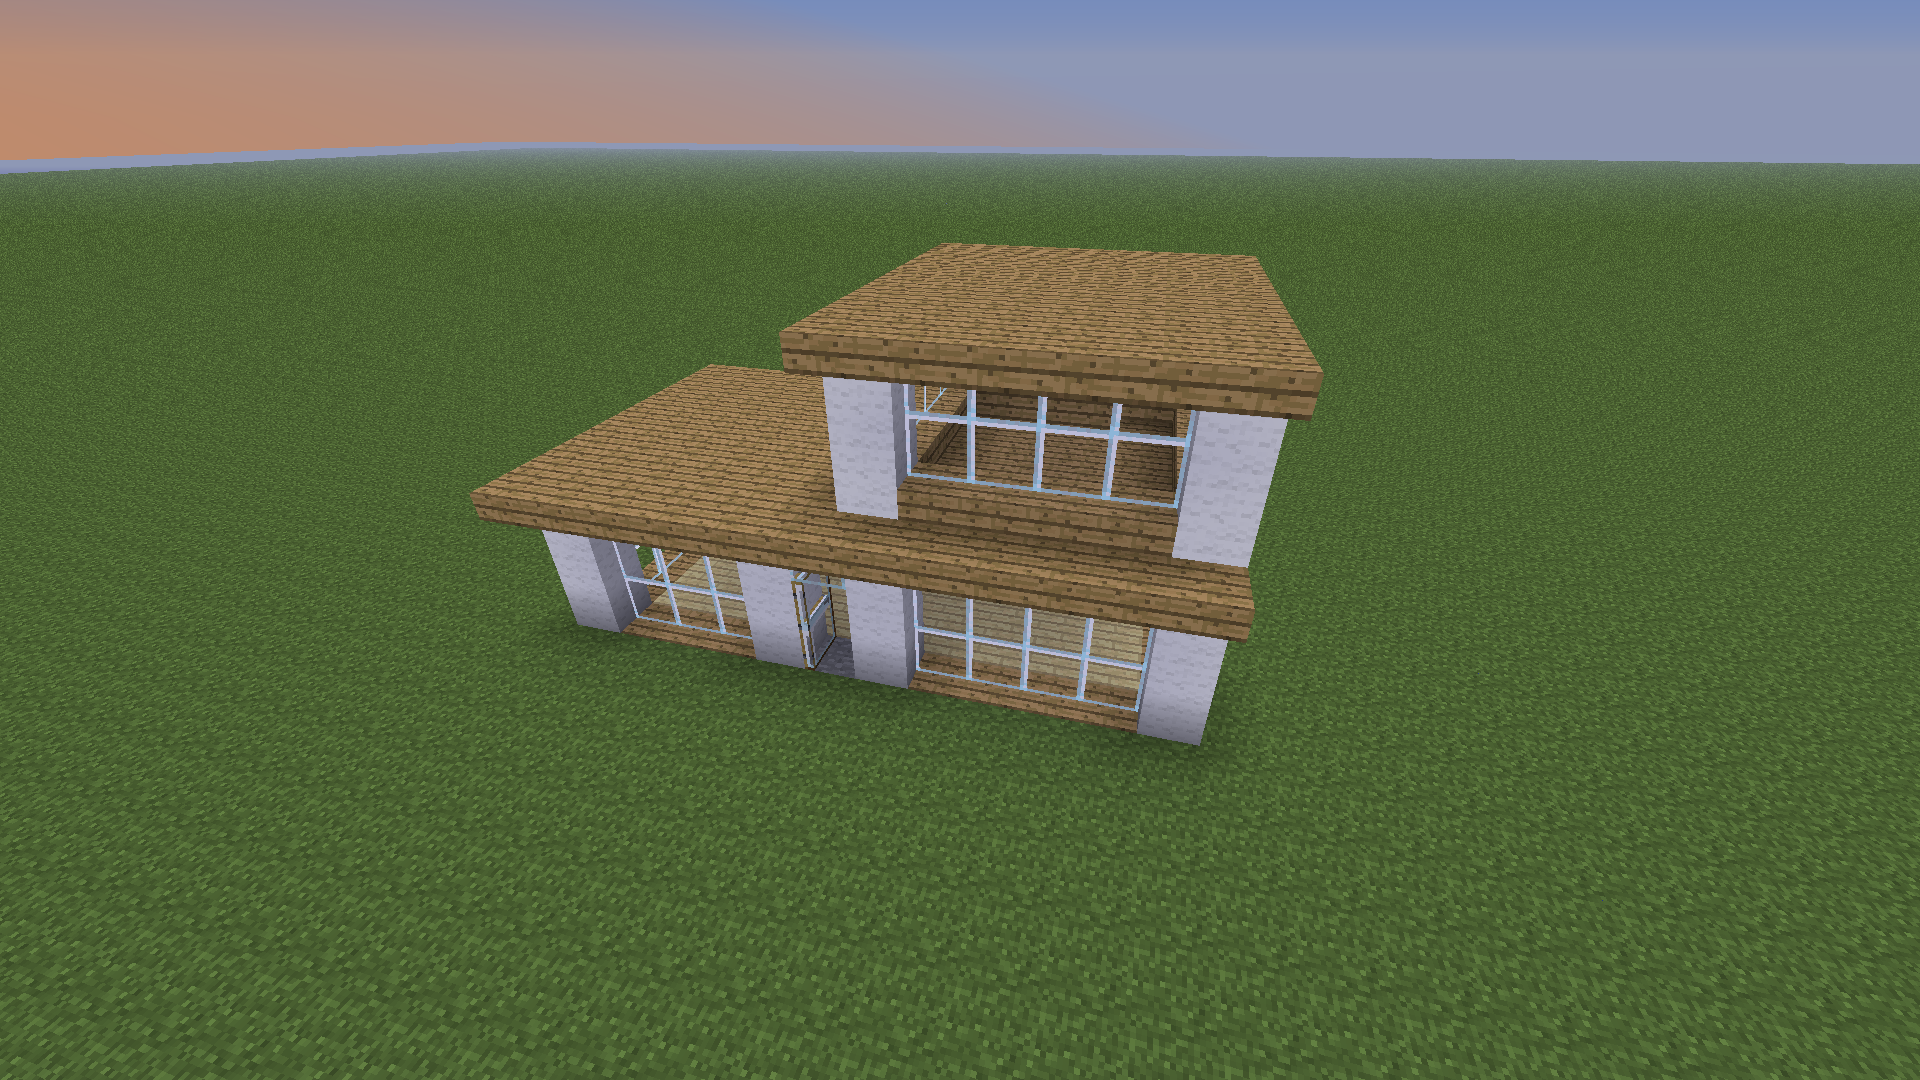 Modern house minecraft tutorial minecraft house designs for Modern house xbox minecraft